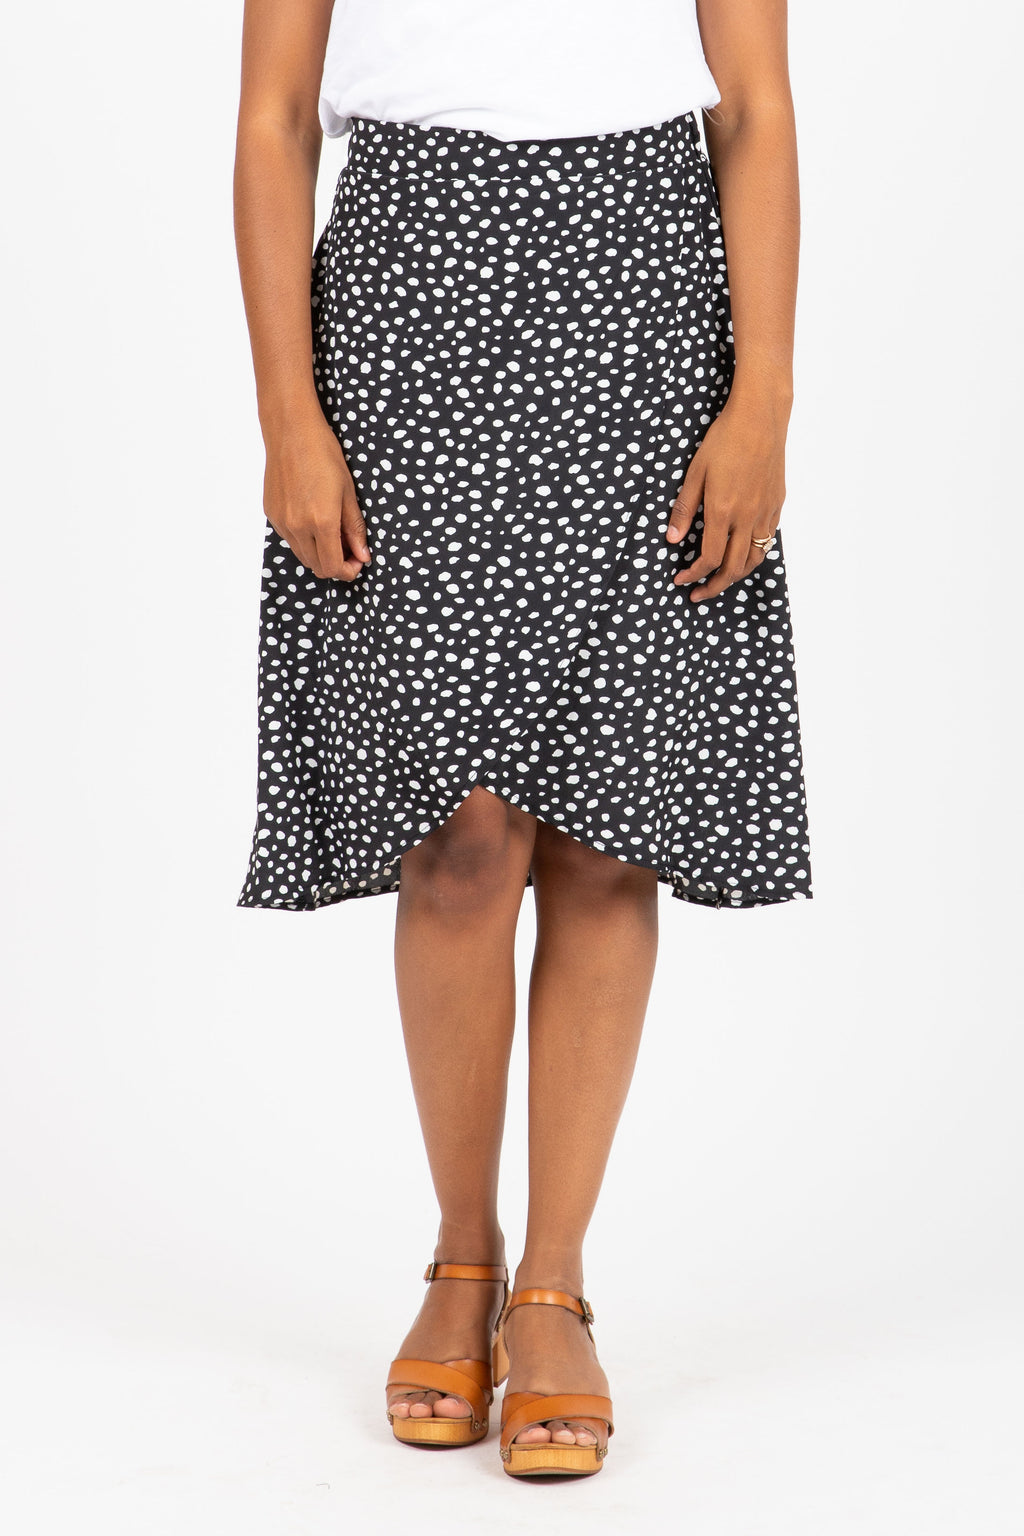 The Denny Wrap Print Skirt in Black